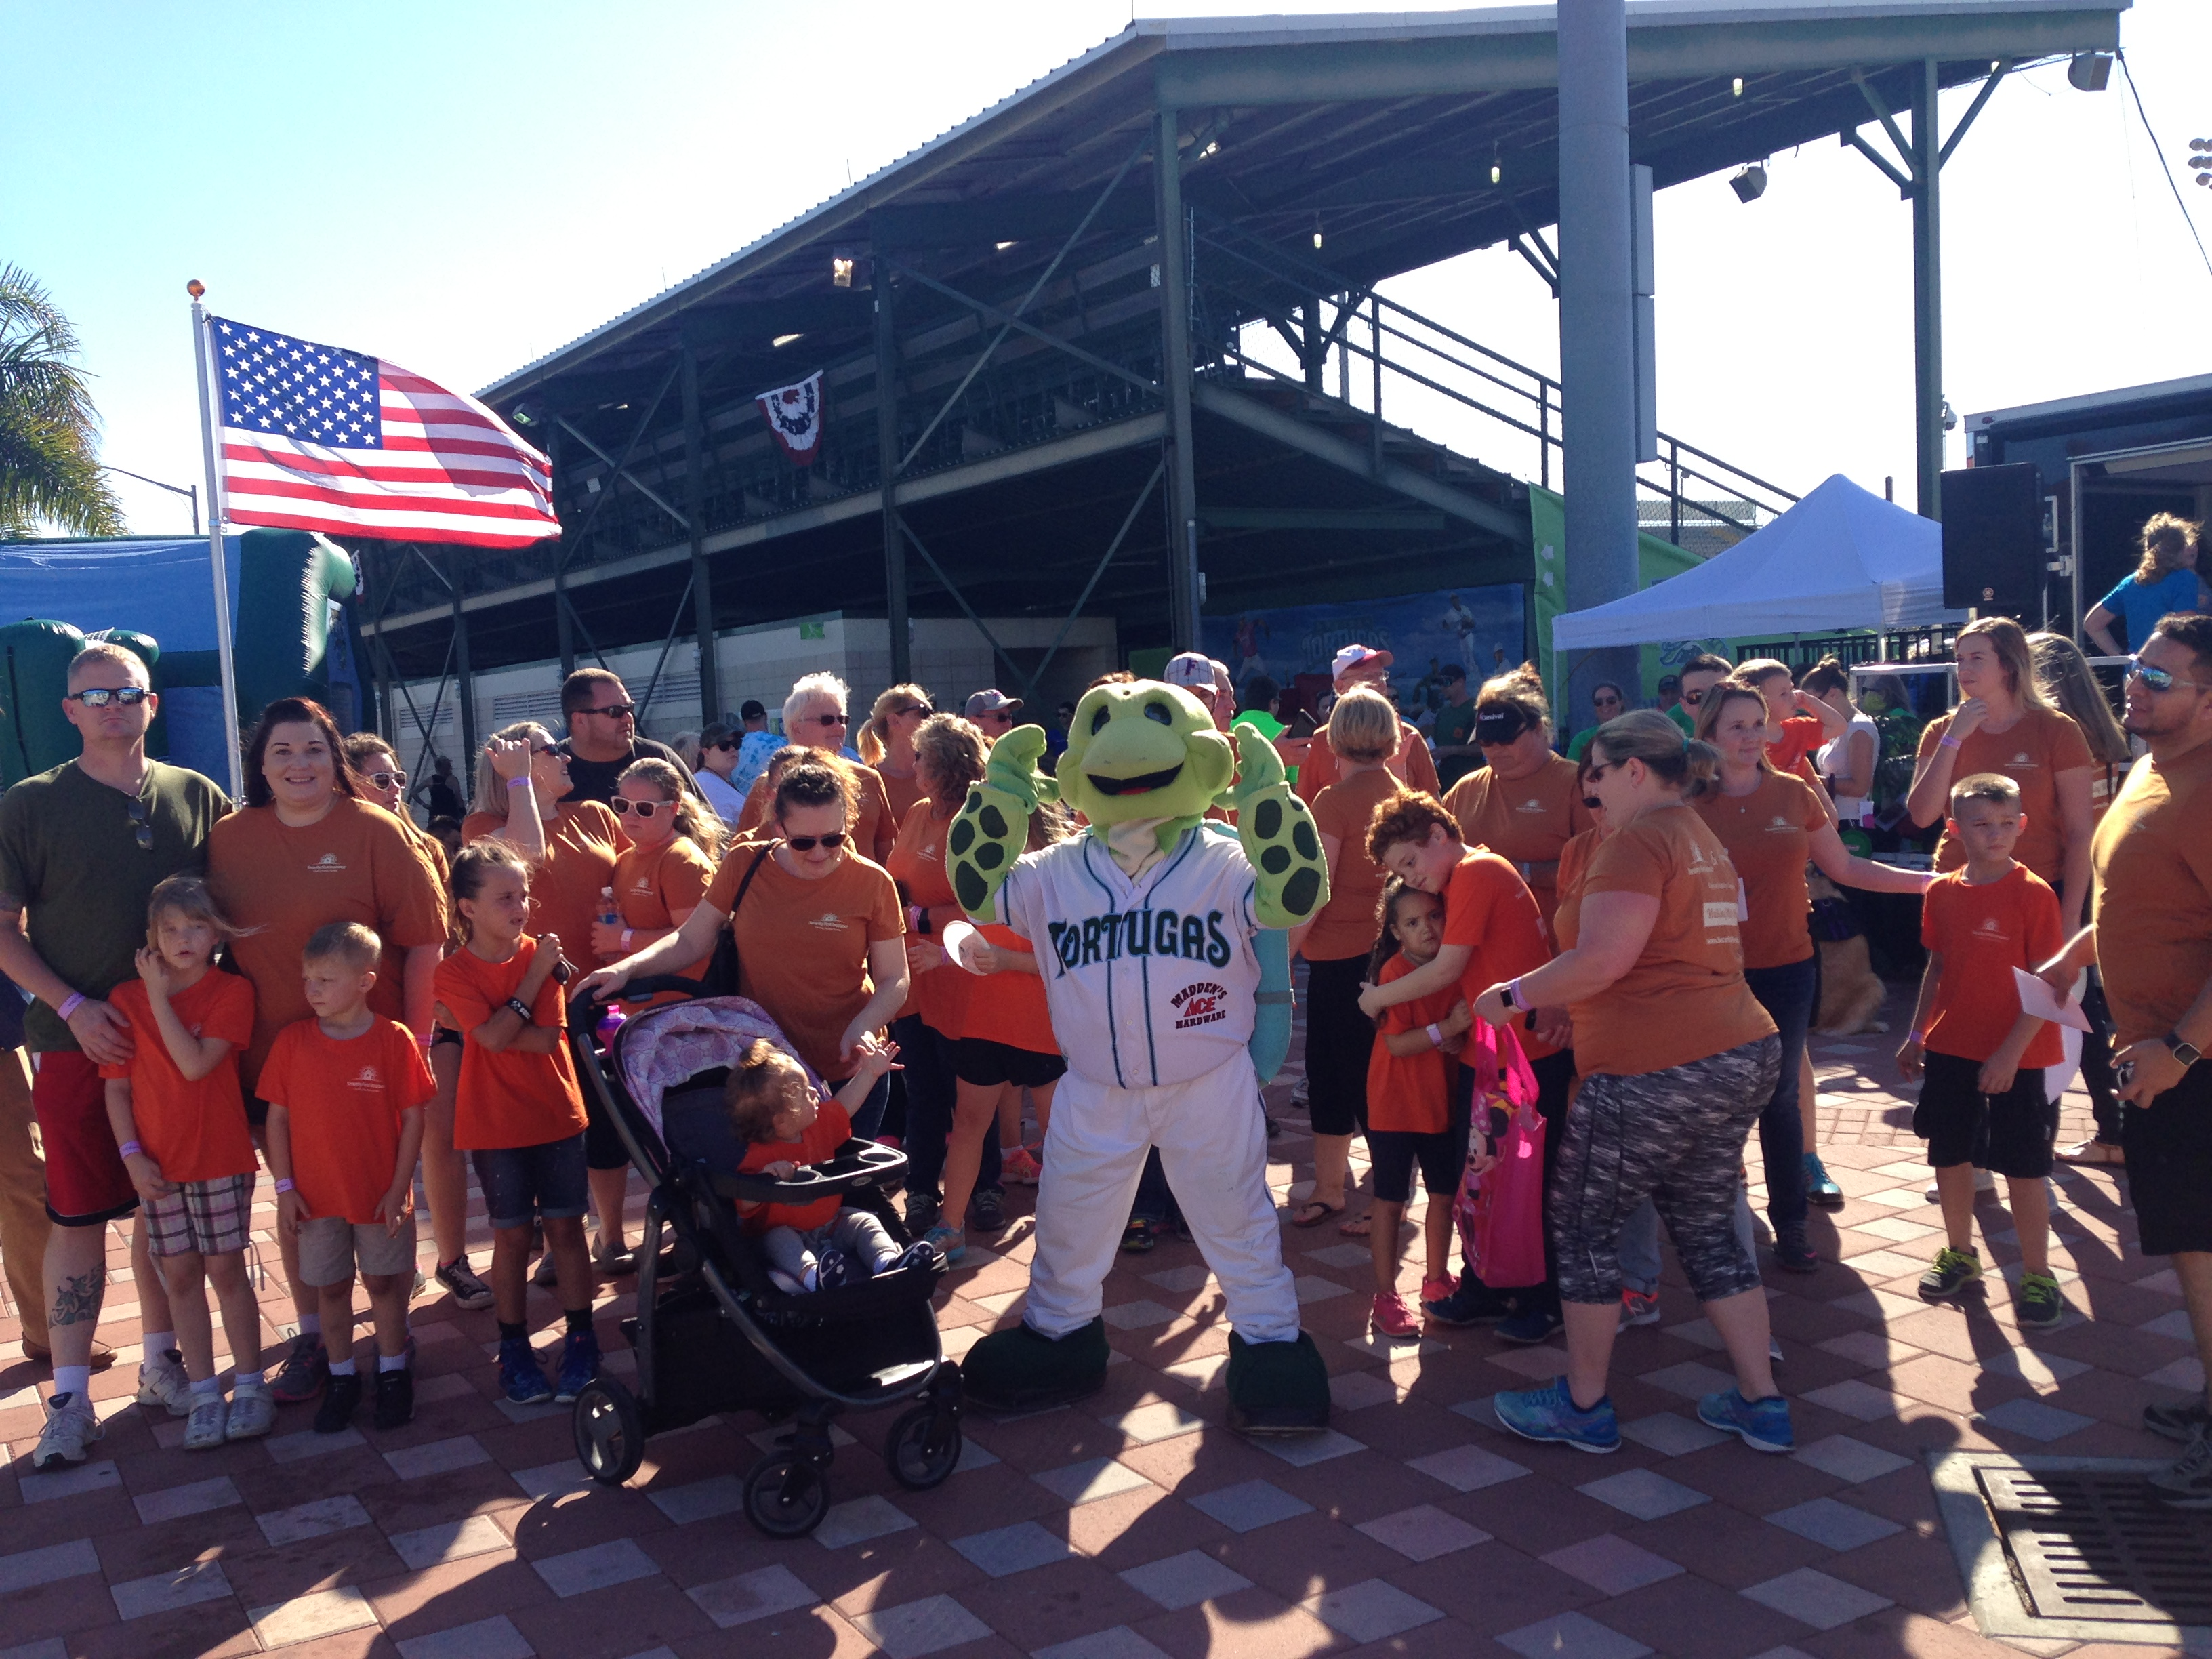 image of the the Tortugas turtle mascot with a group of citizens standing next to him